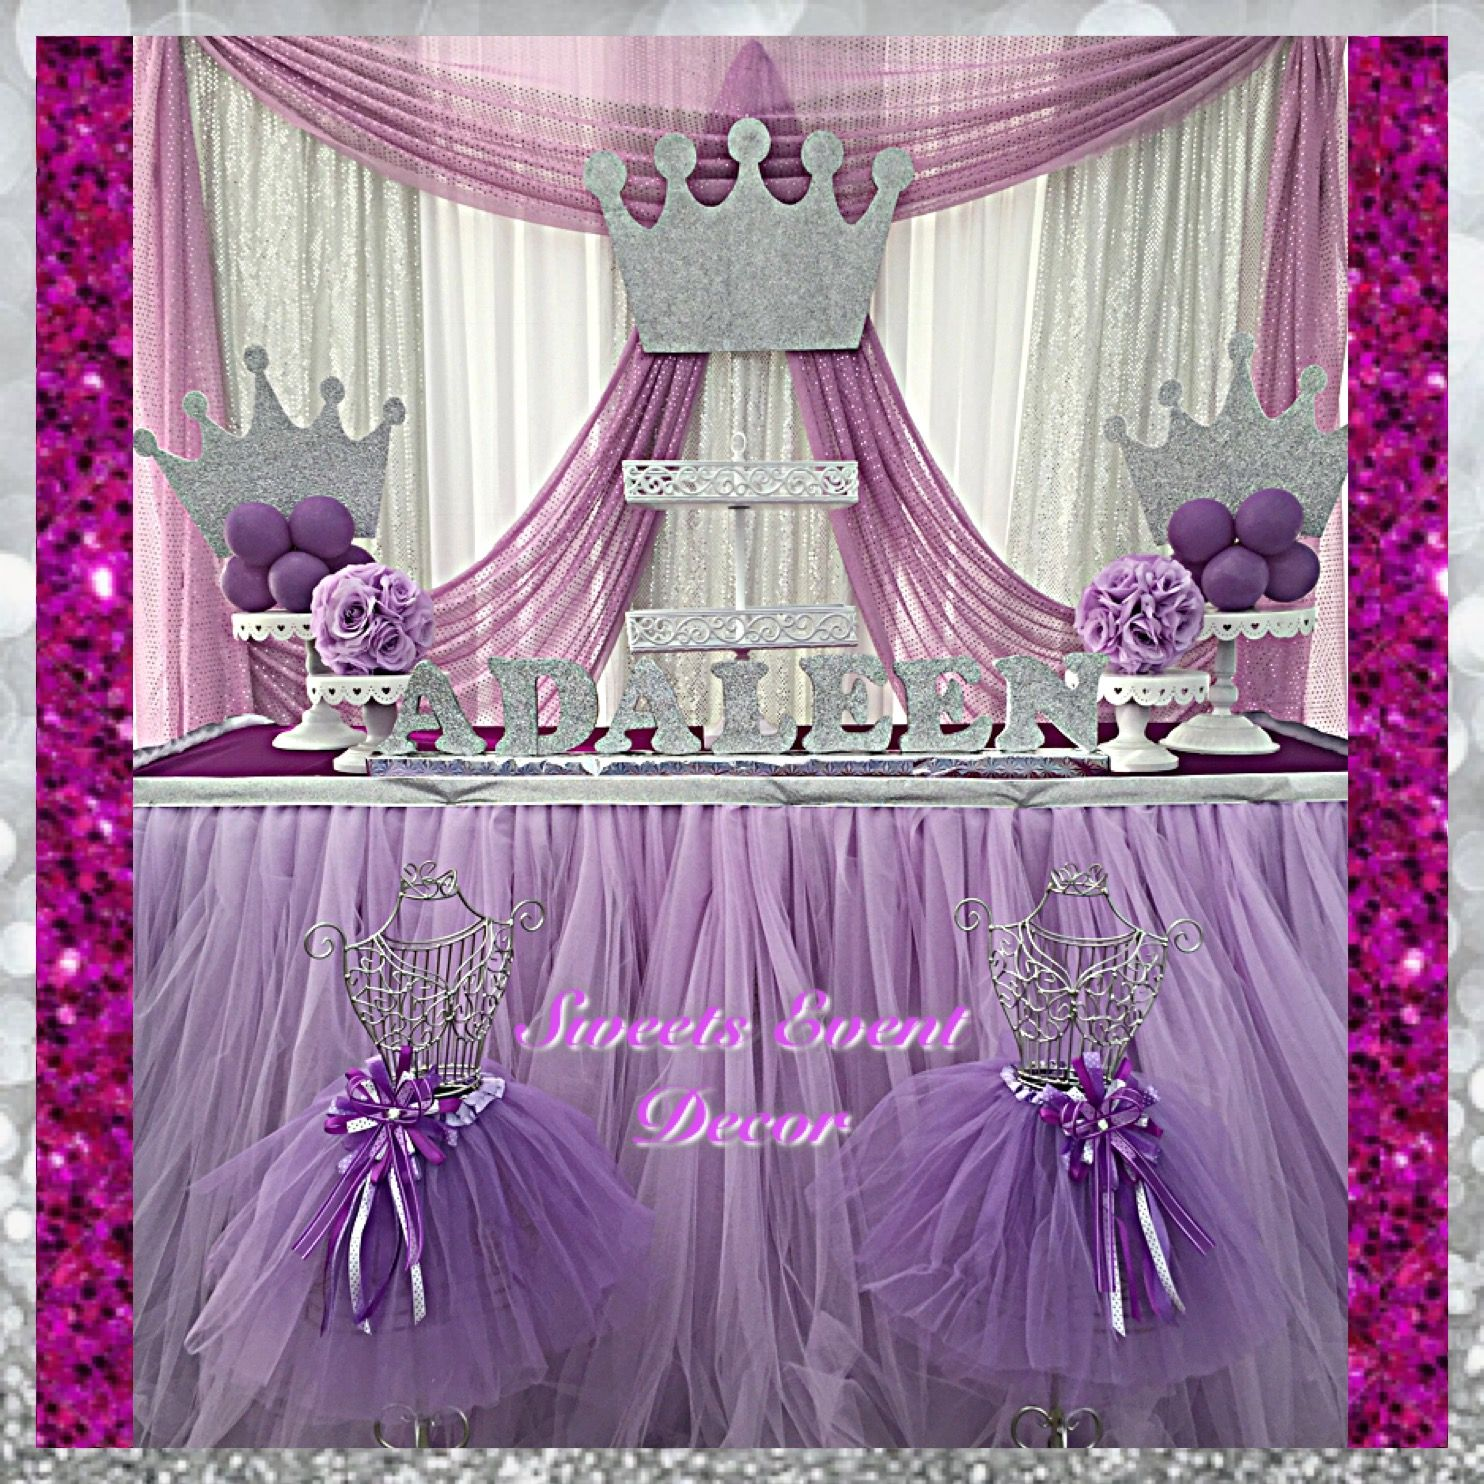 princess theme fabric decor by: sweets event decor | balloon decor